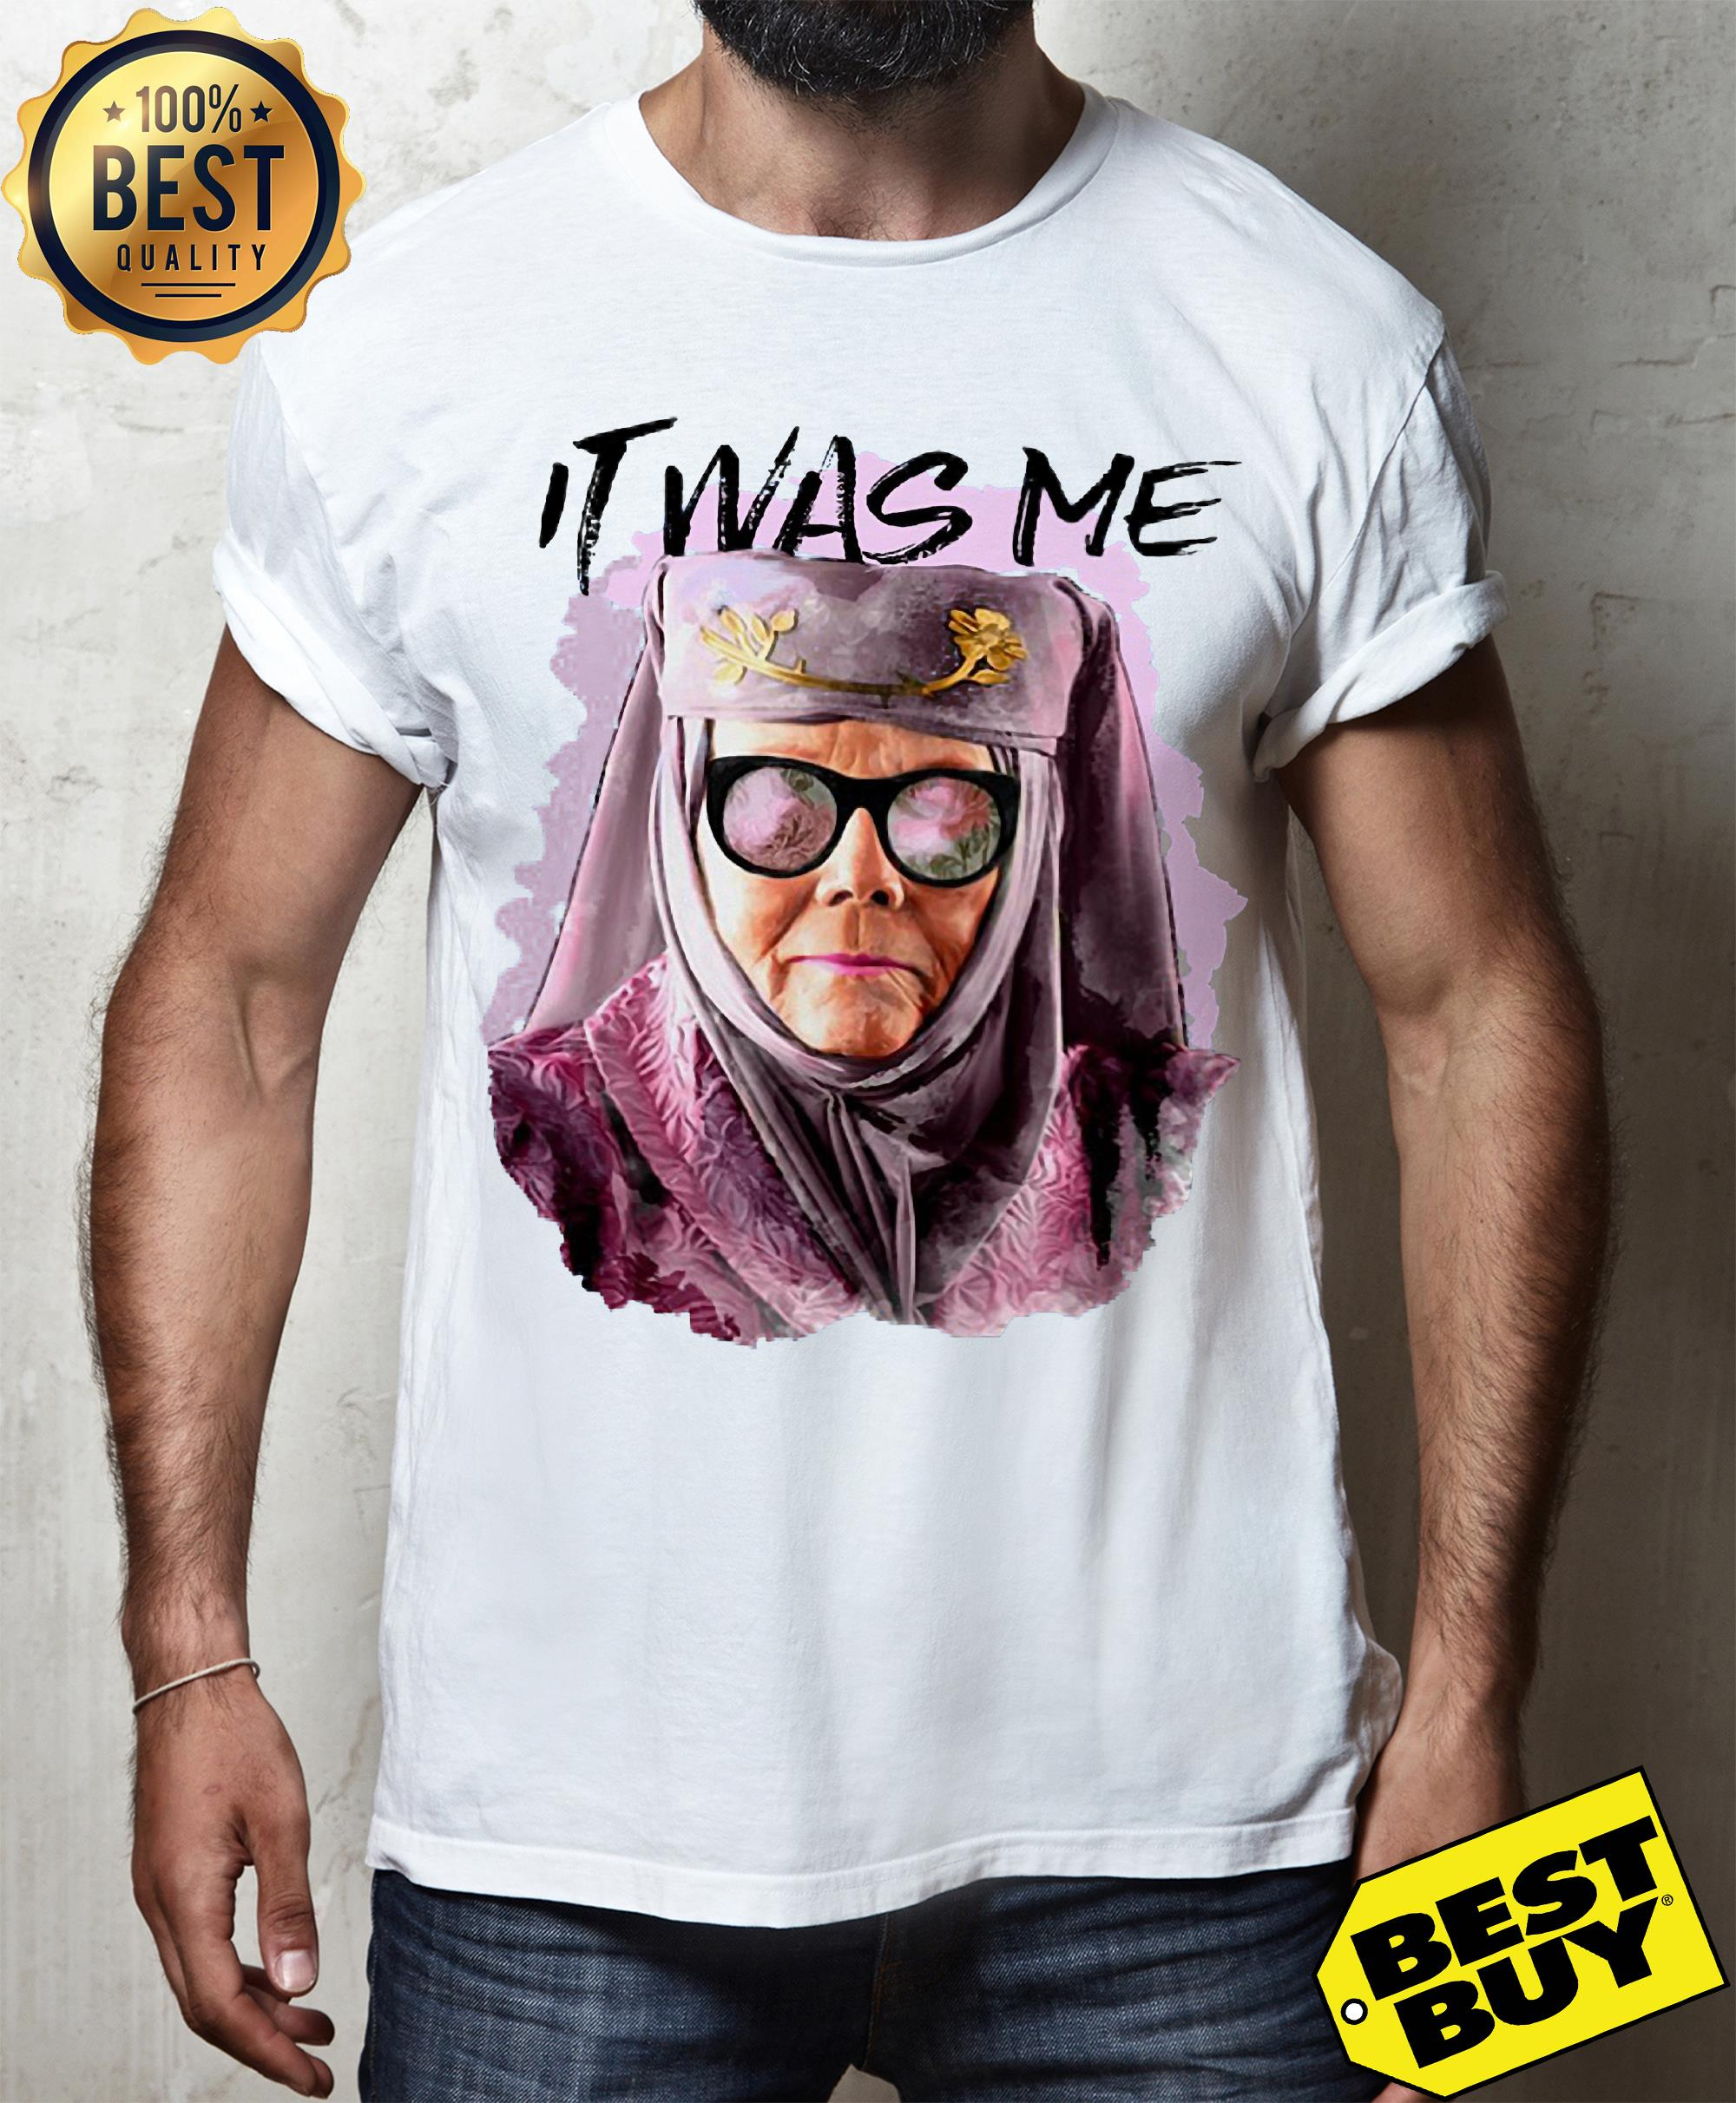 Olenna Tyrell Game of Thrones – Tell Cersei it was me shirt